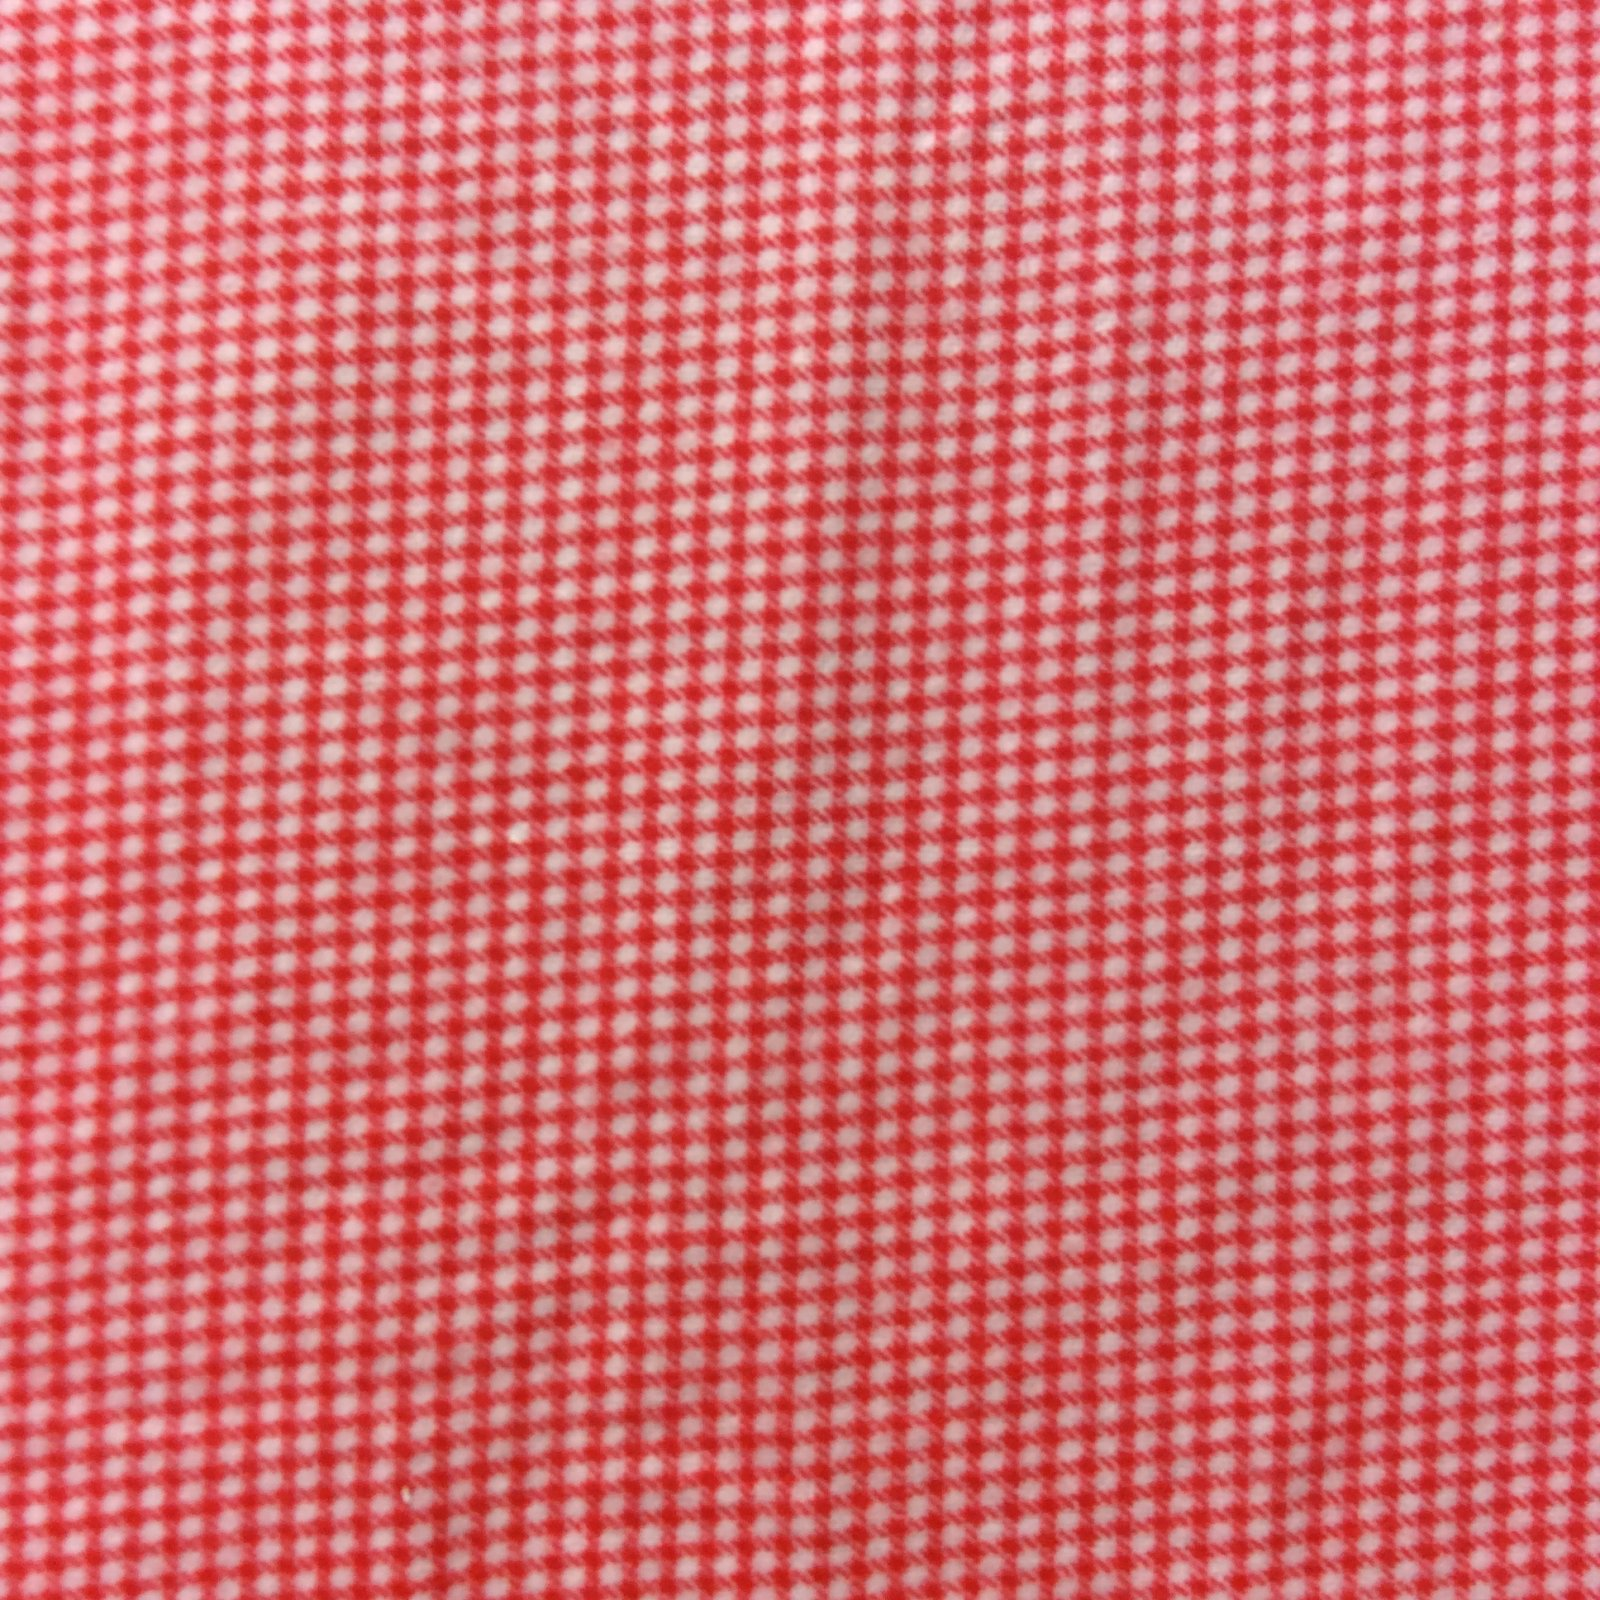 Exquisite Home Decor Aa02 Super Soft Red And White Gingham Picnic Cotton Fabric